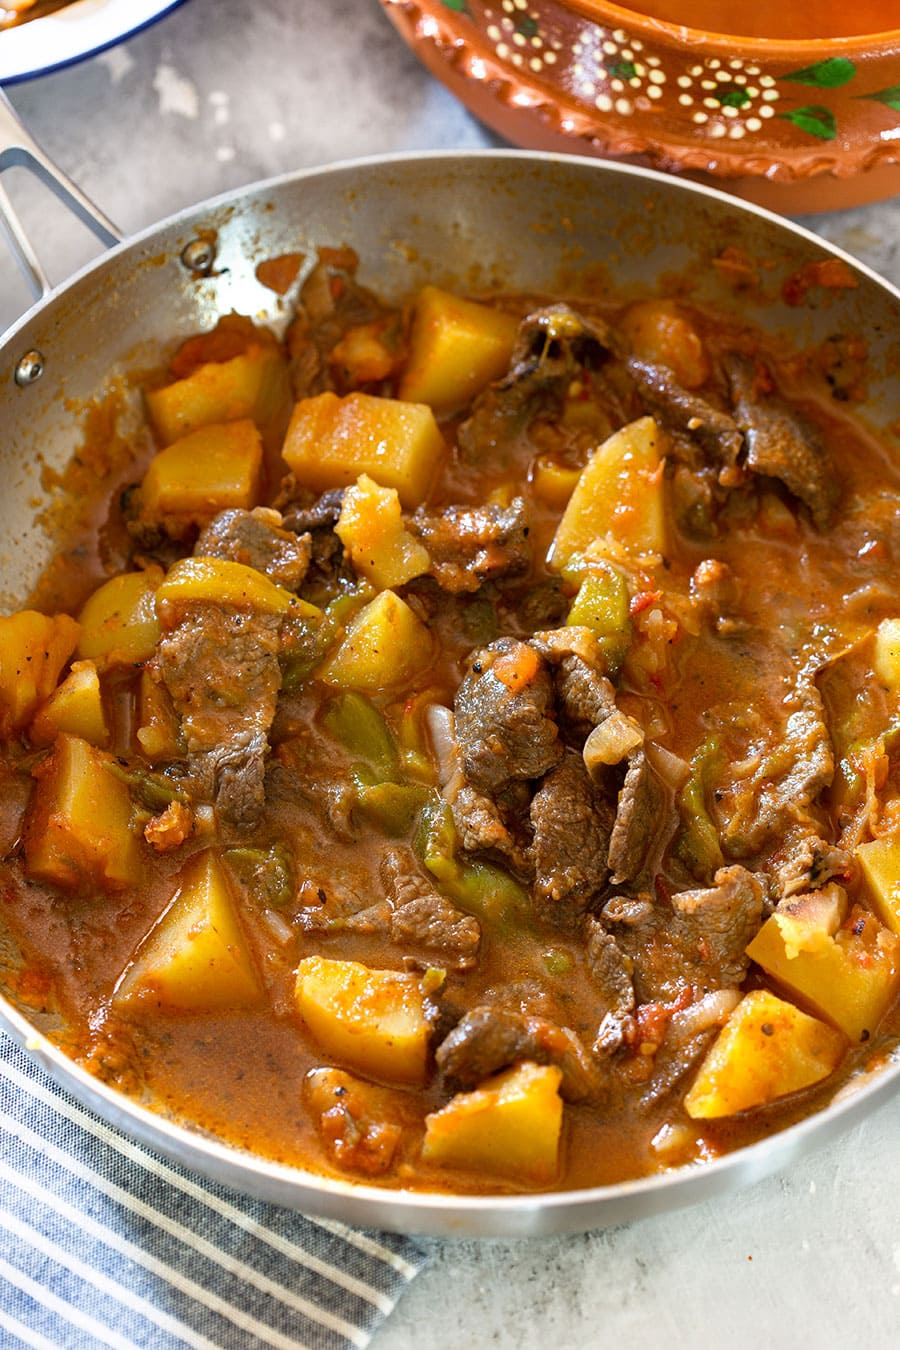 Mexican style beef with tomato sauce, potatoes and chili peppers.